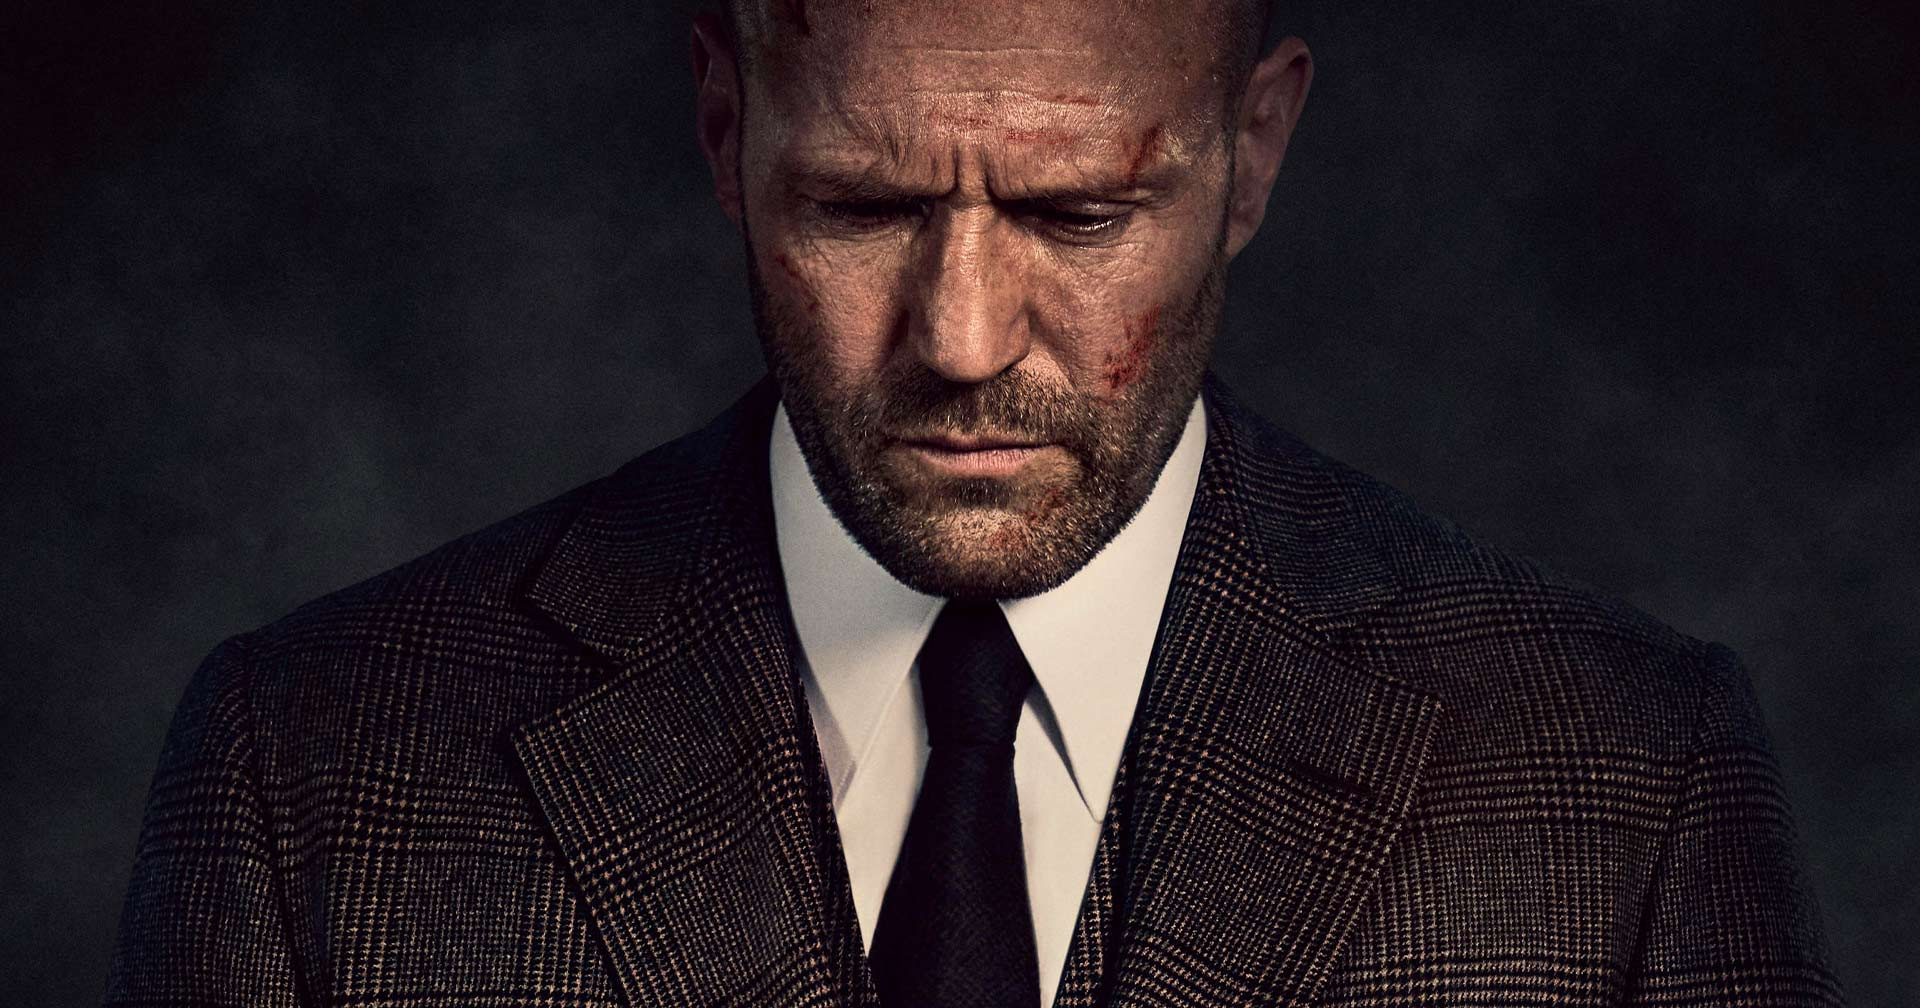 Jason Statham está de volta! Trailer exclusivo renova parceria do ator com o cineasta Guy Ritchie